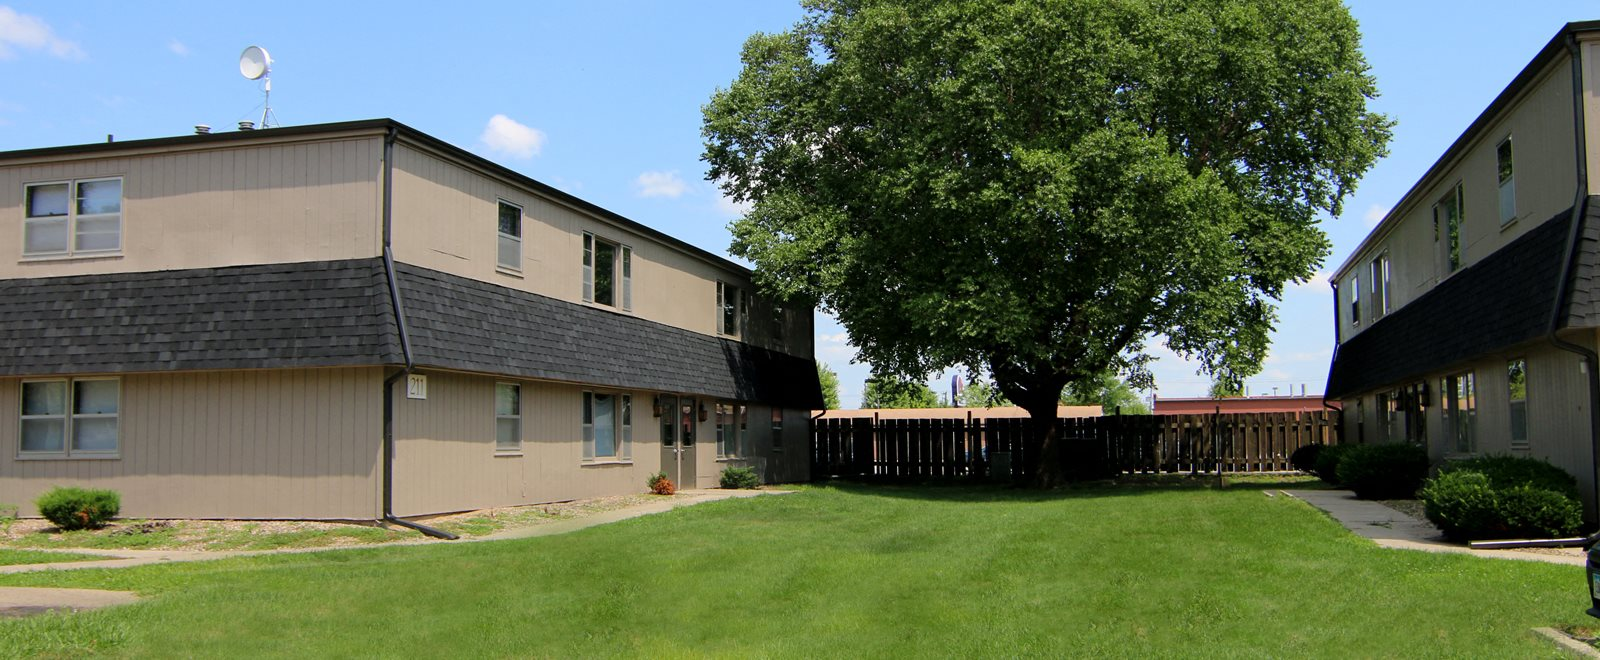 Exteriors-South-View-Apartments-Ames-Iowa-courtyard